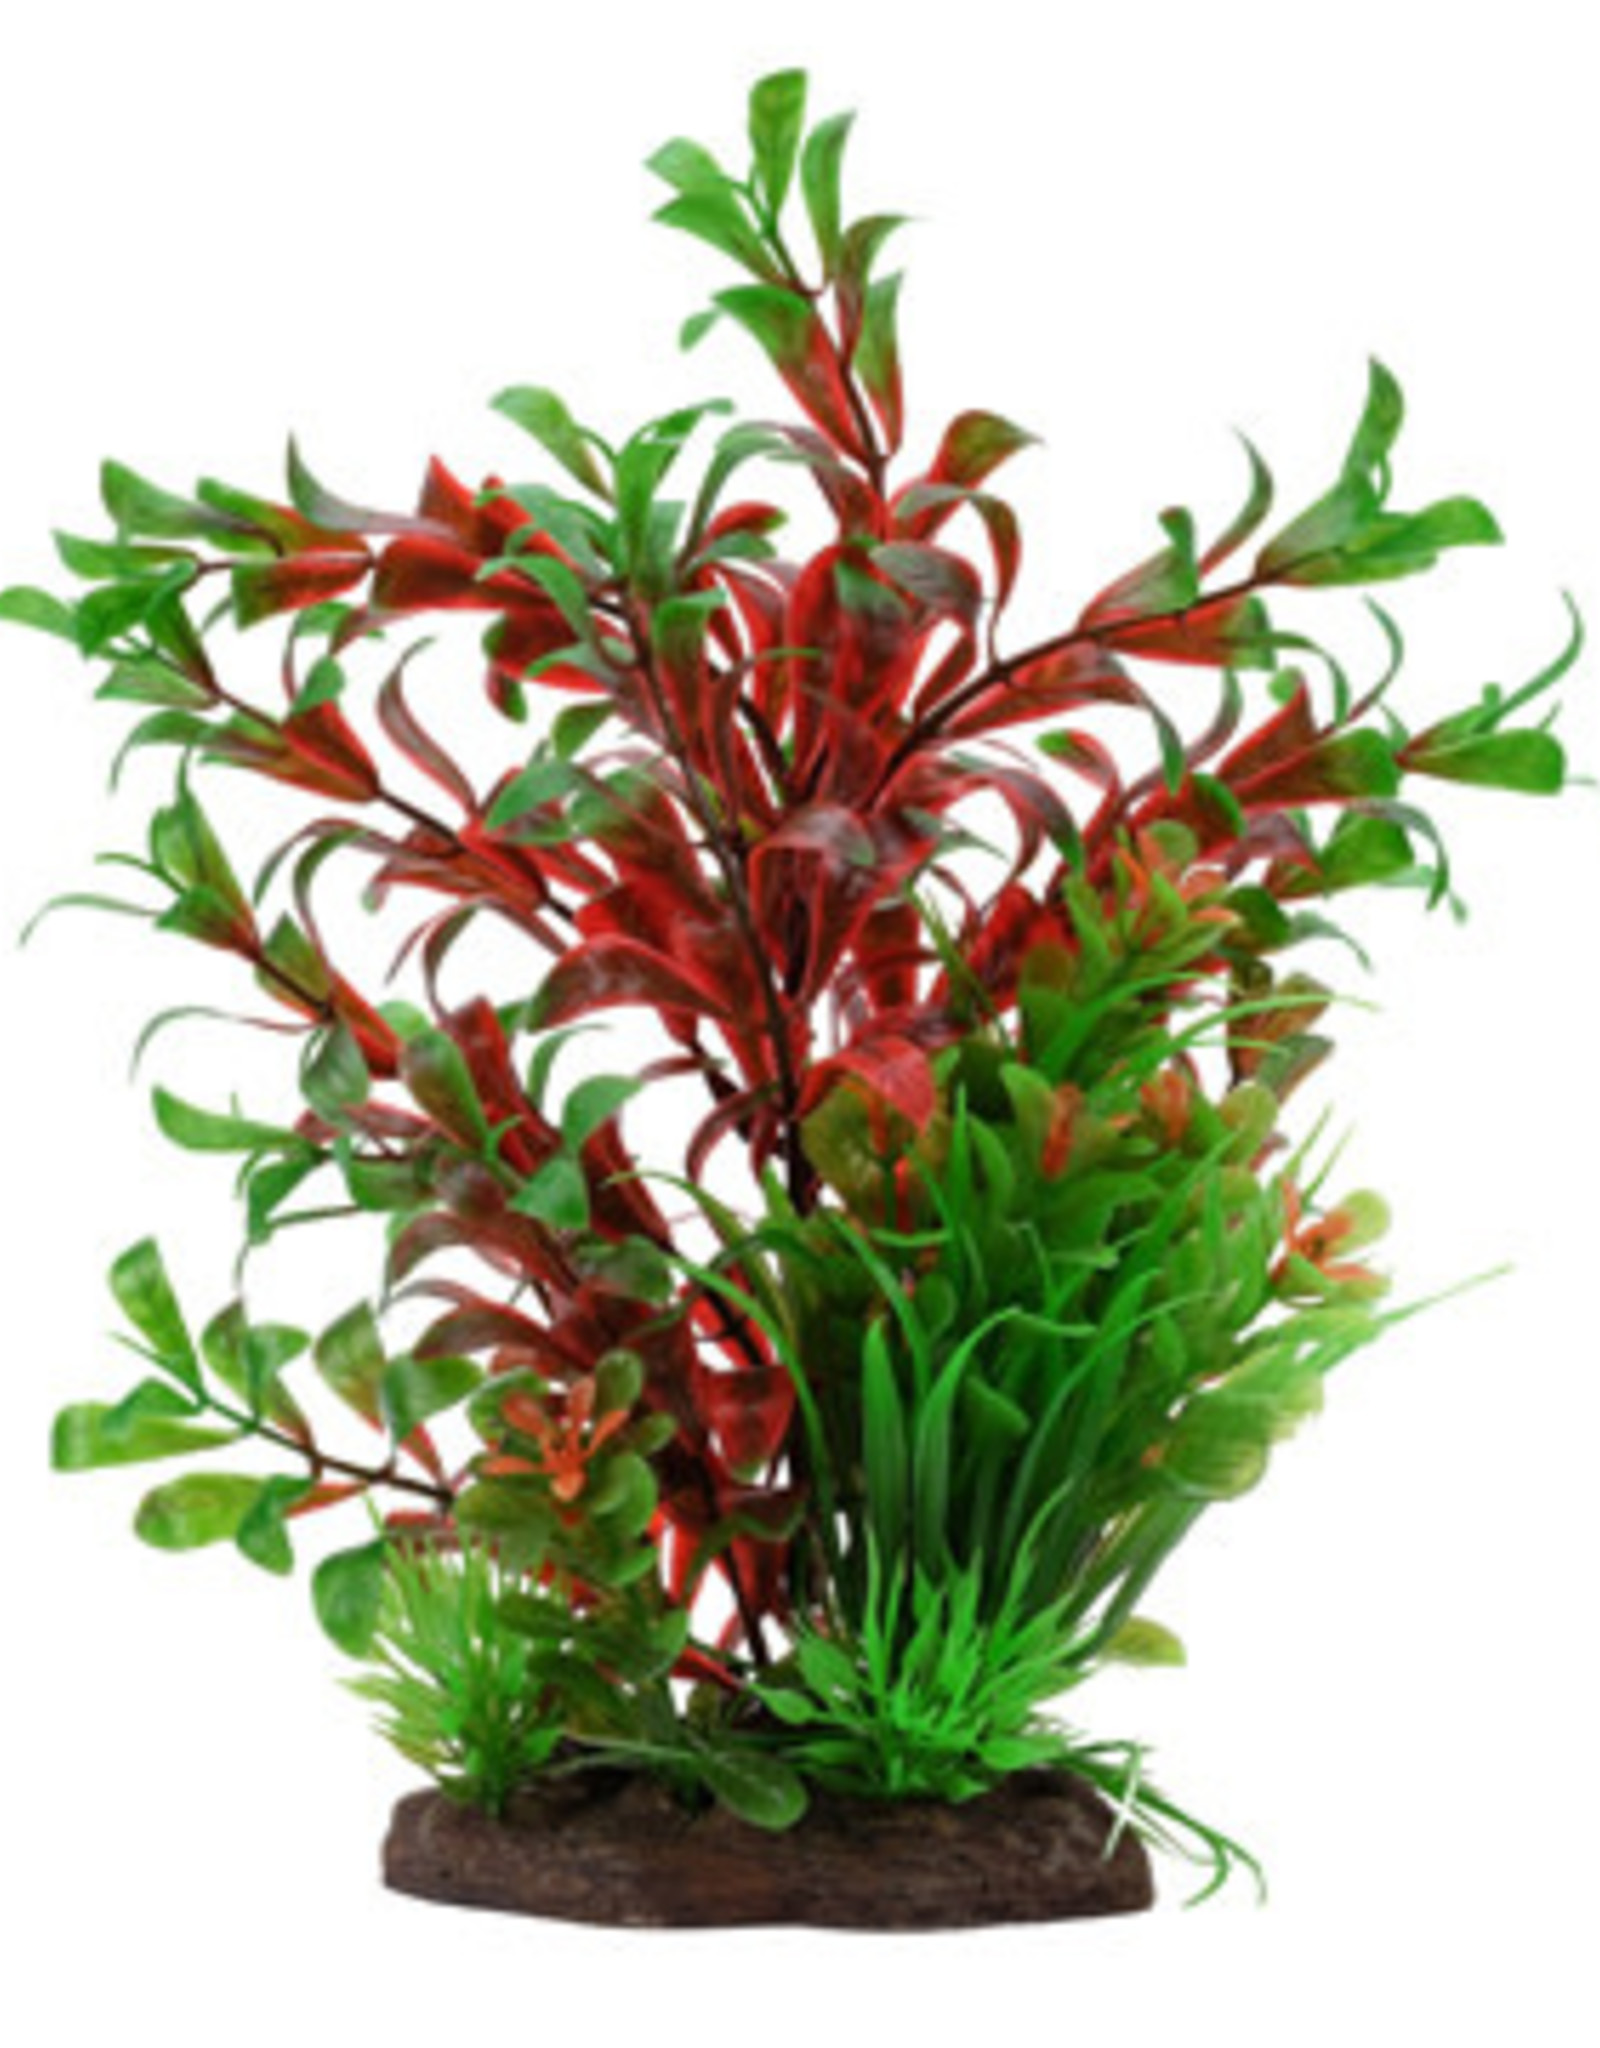 Fluval Fluval Aqualife Plant Scapes Red Ludwigia/Dwarf Sagittarius Plant Mix - 20 cm (8 in)